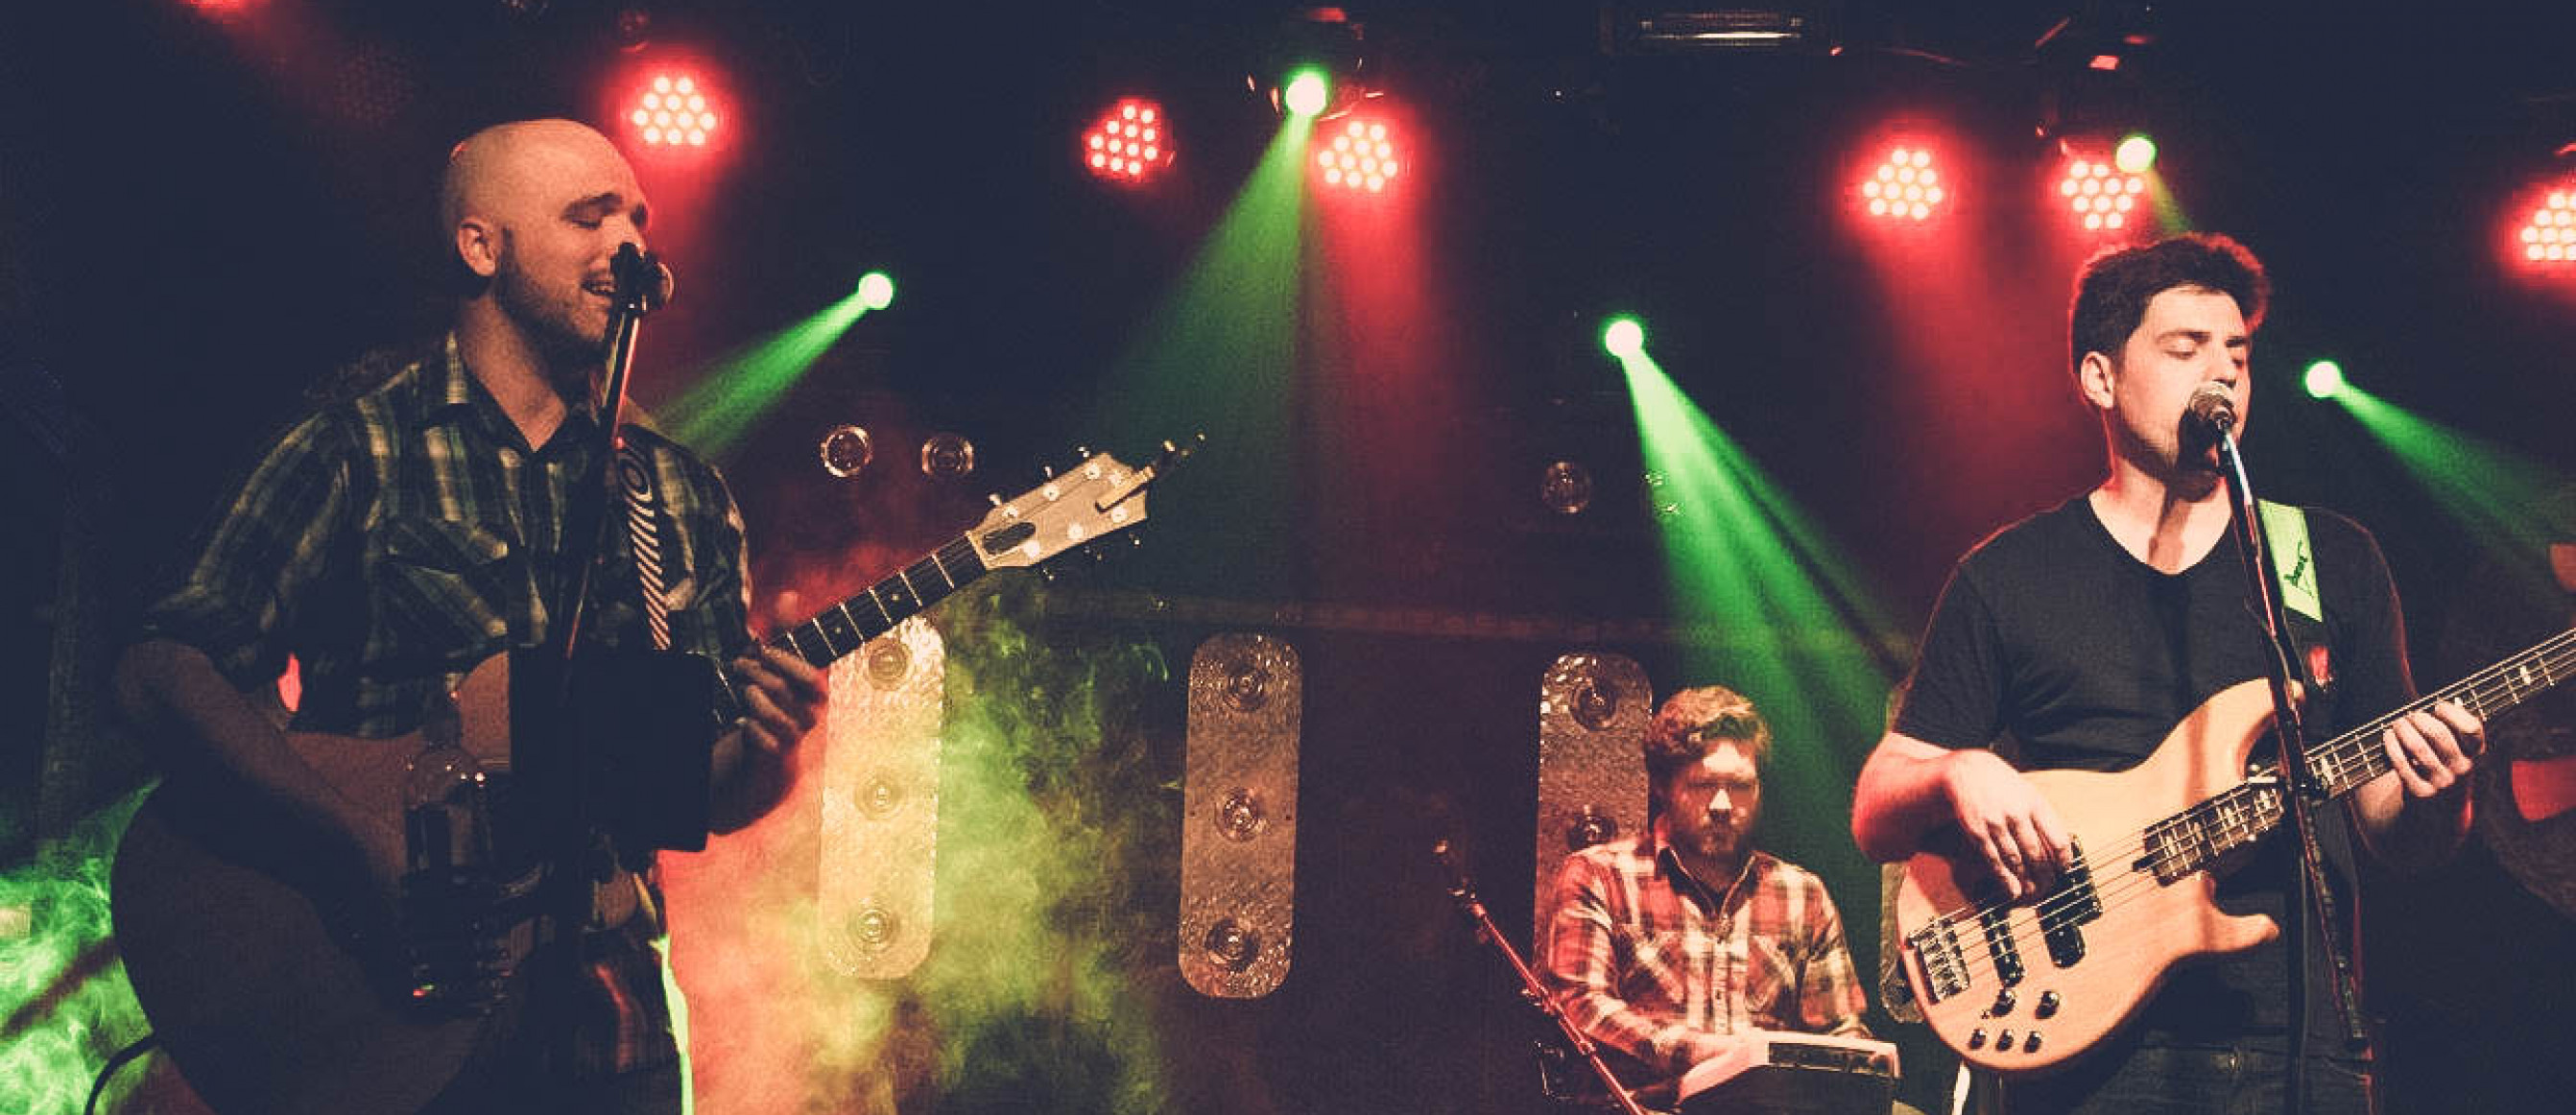 Atlanta Bands For Hire | Weddings & Events Bands - The Riot